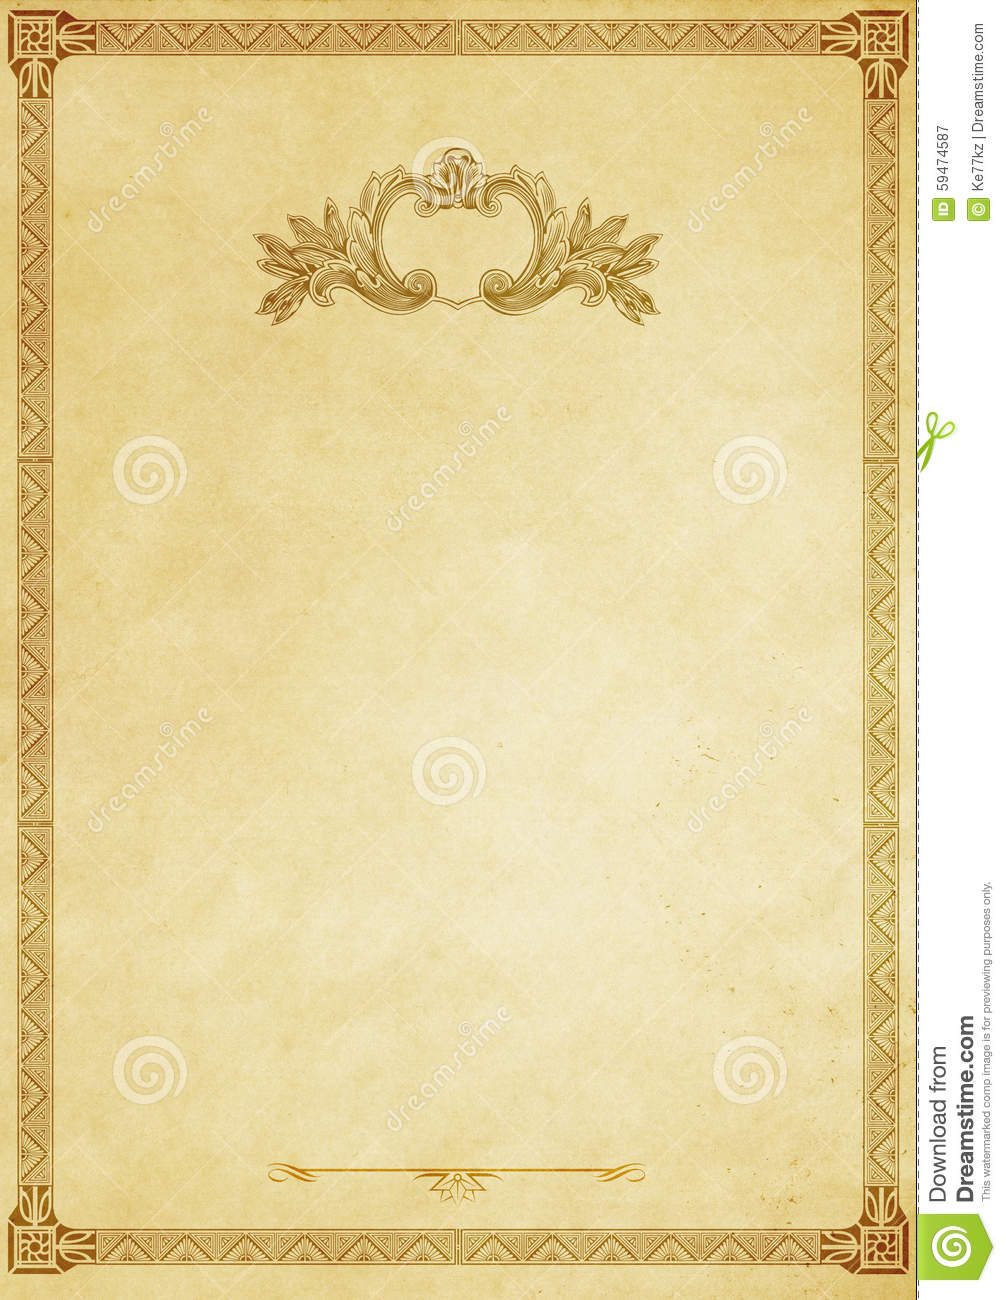 old paper background with decorative vintage border. stock